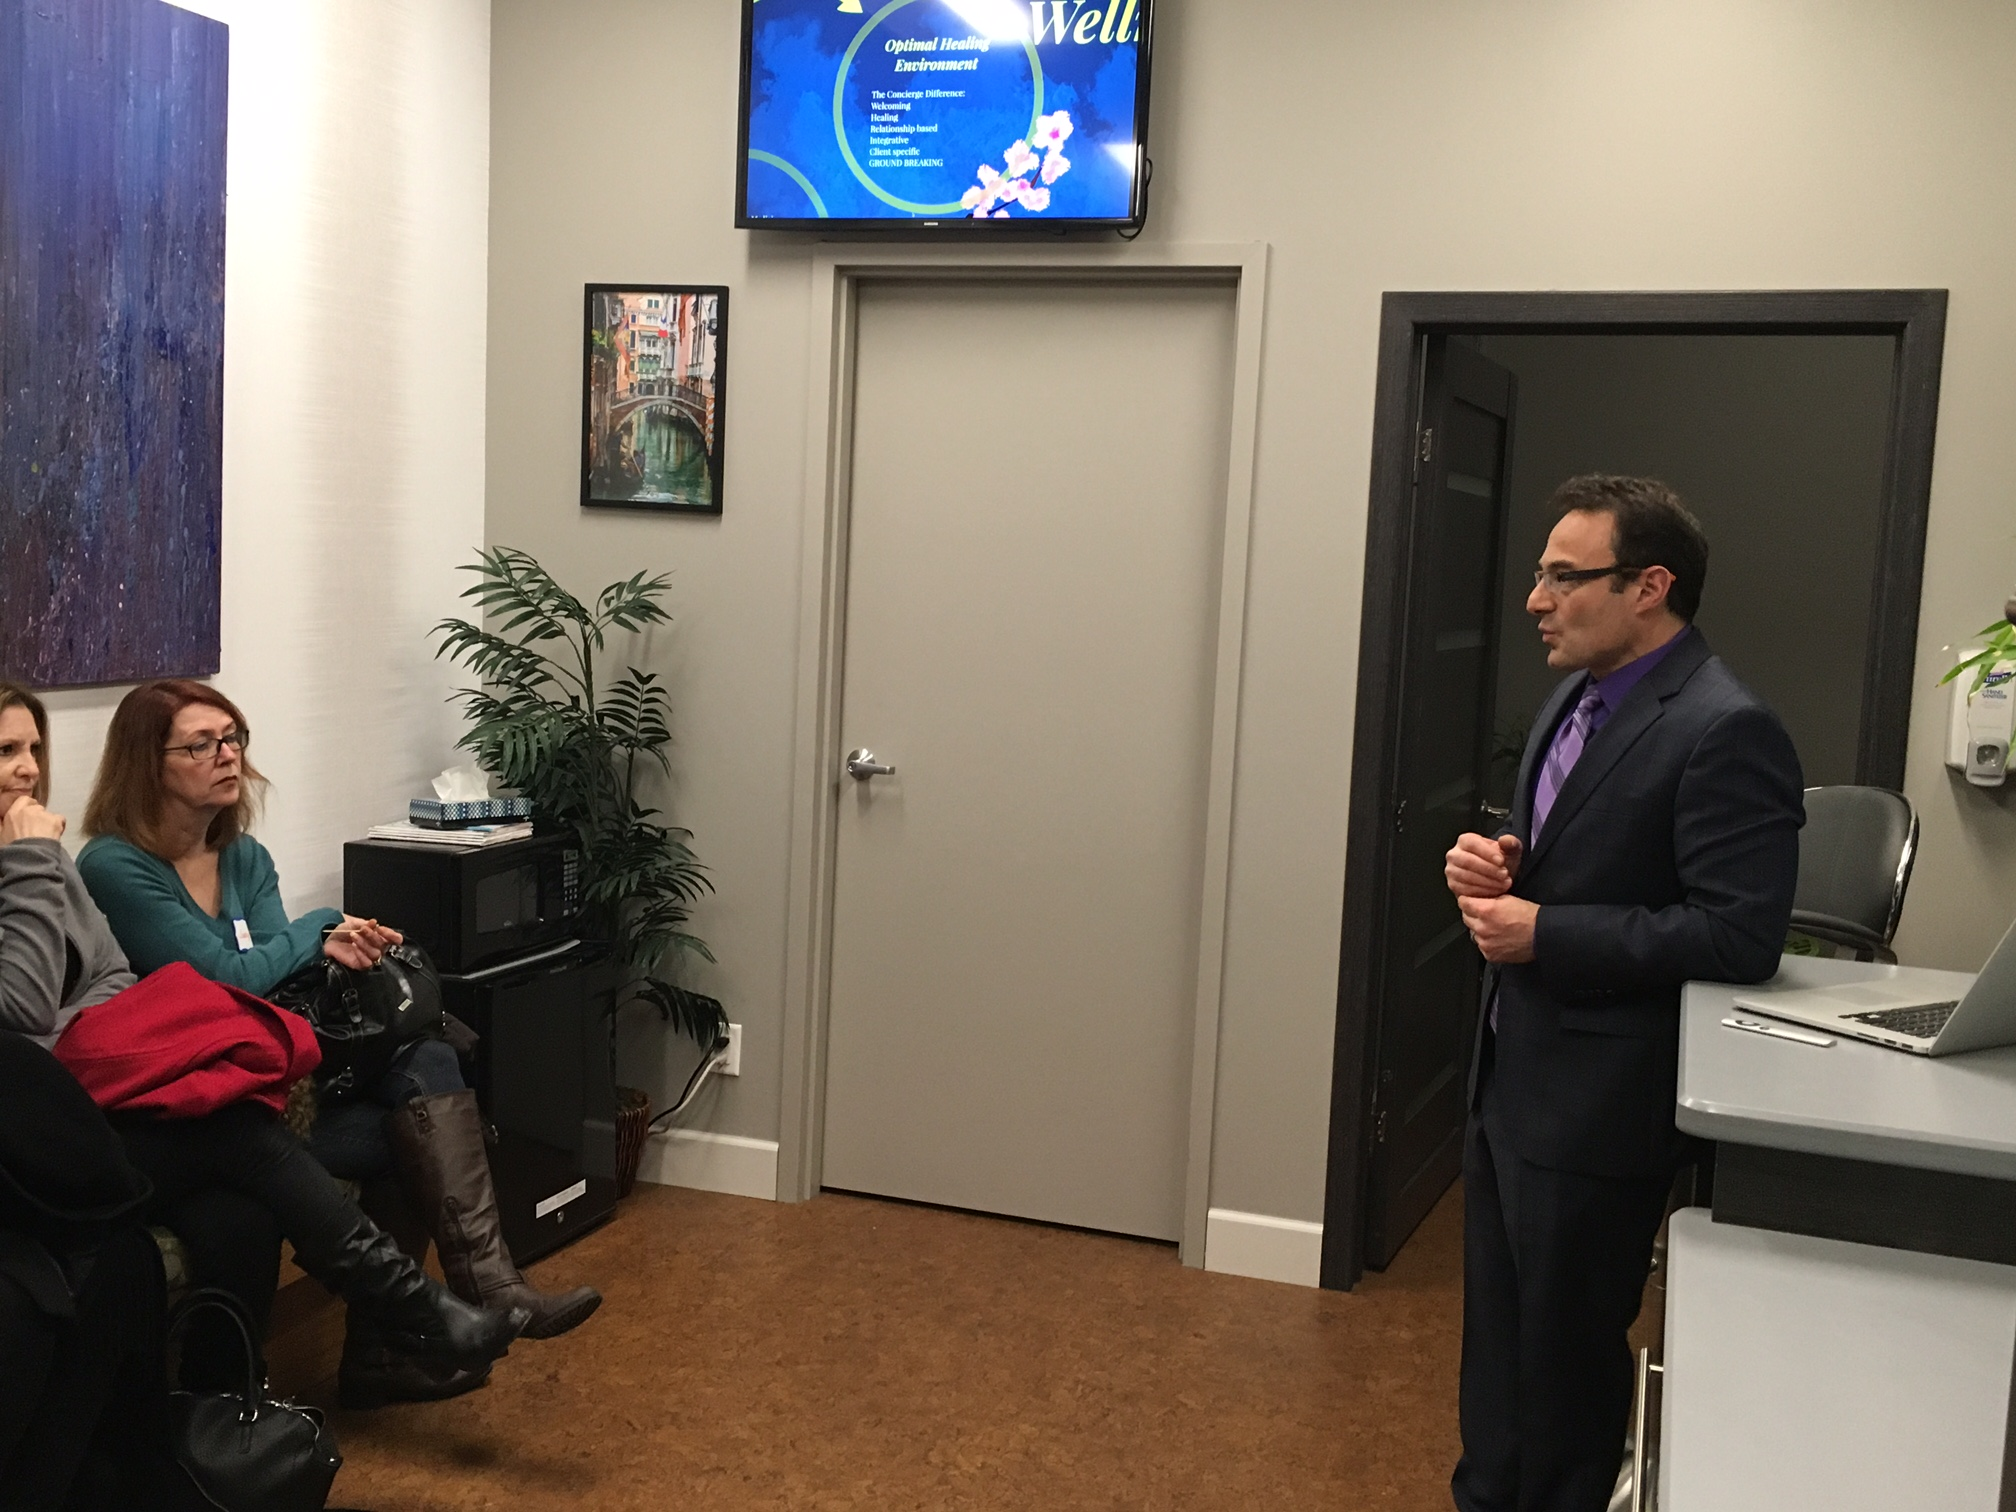 Dr. Leonard Kaplan leads a presentation Thursday night during an open house at Osteopathic Wellness Medicine of WNY. Holistic health services, and even the artwork on the walls, are for sale in his new Elmwood Avenue practice. (Photos by Scott Scanlon)